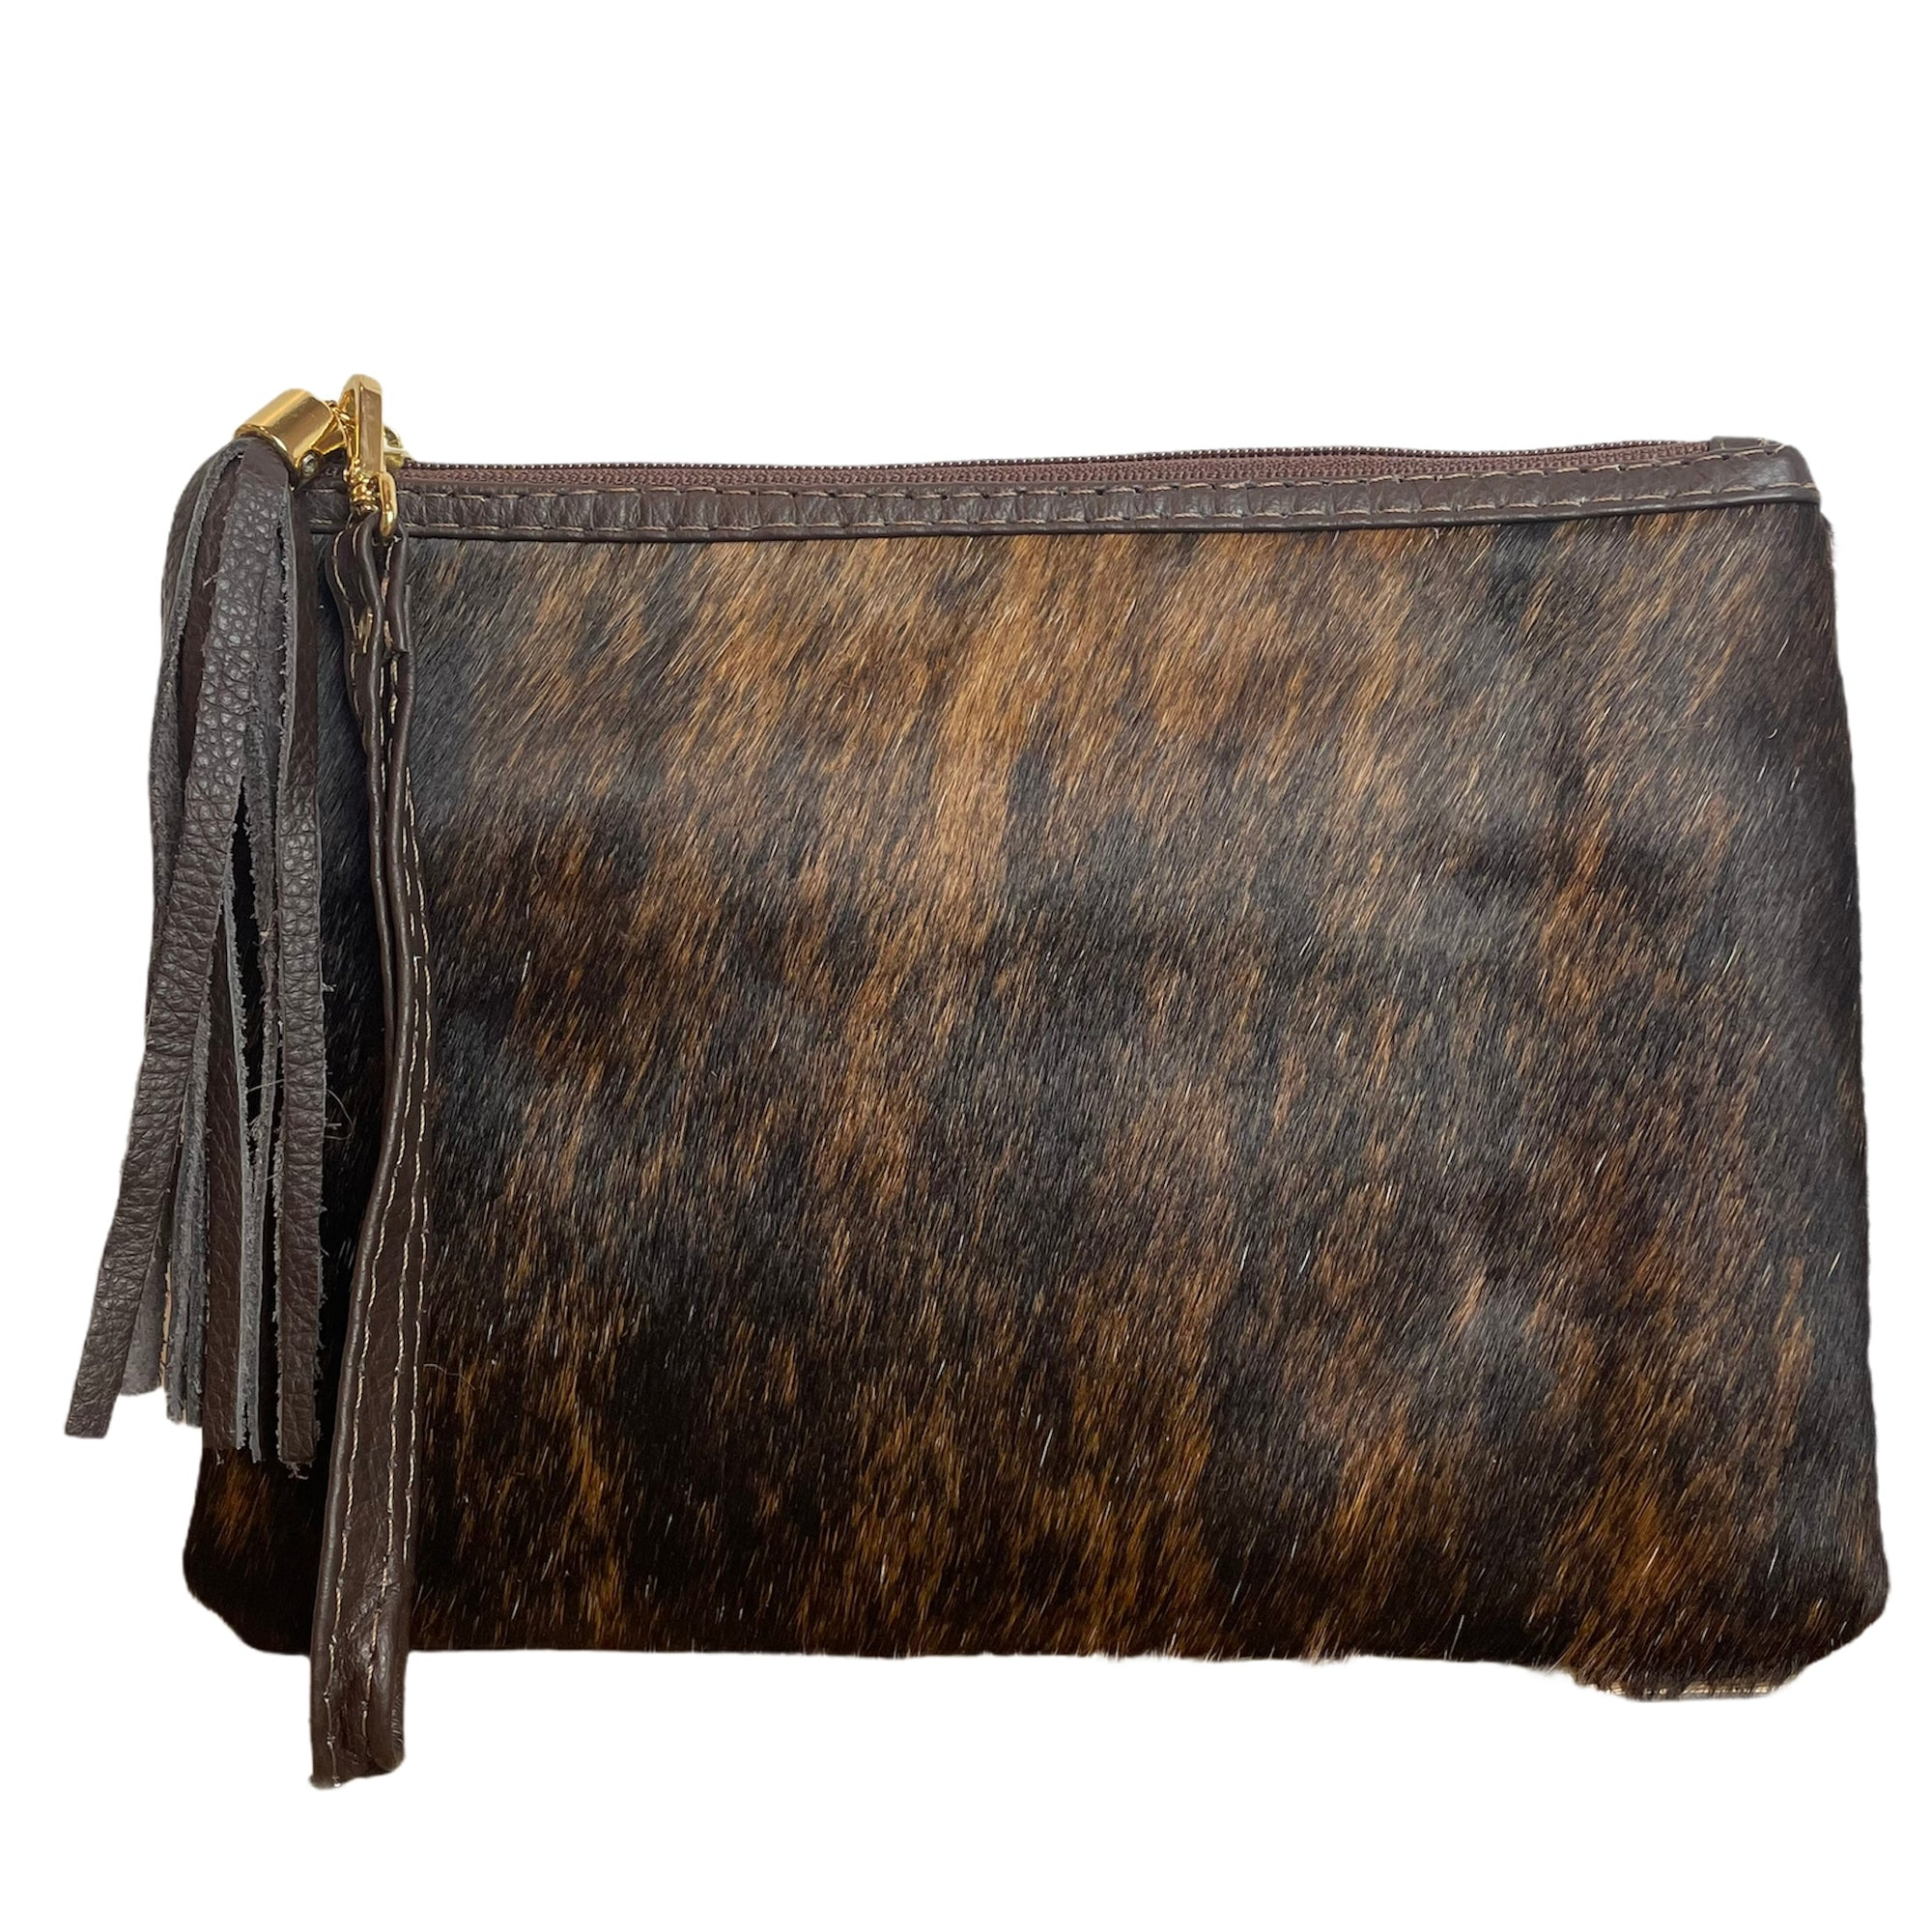 COWHIDE EVERYDAY SMALL CLUTCH - BRINDLE. Izel Designs